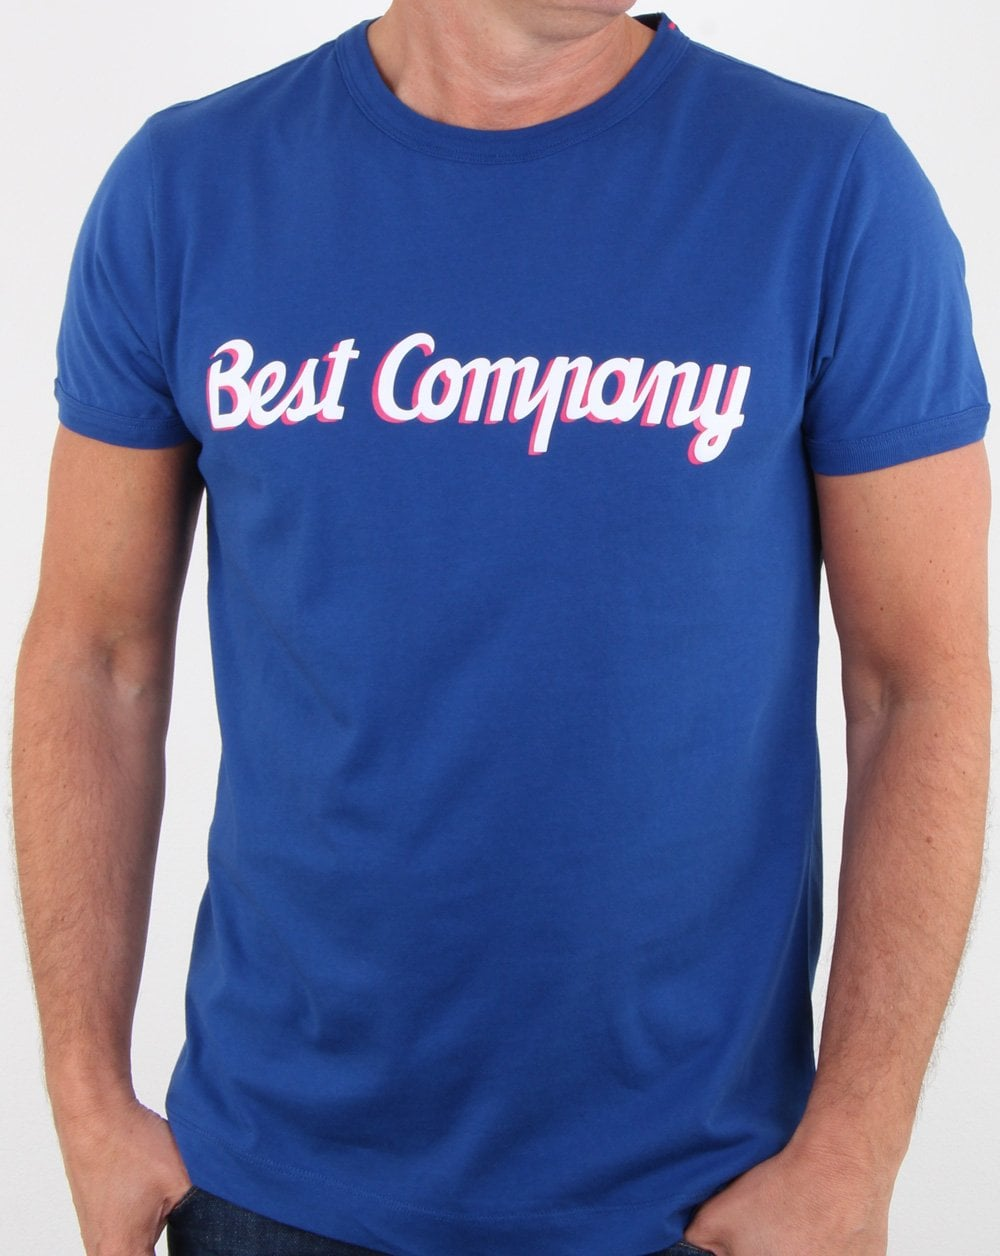 Best Company T-shirt